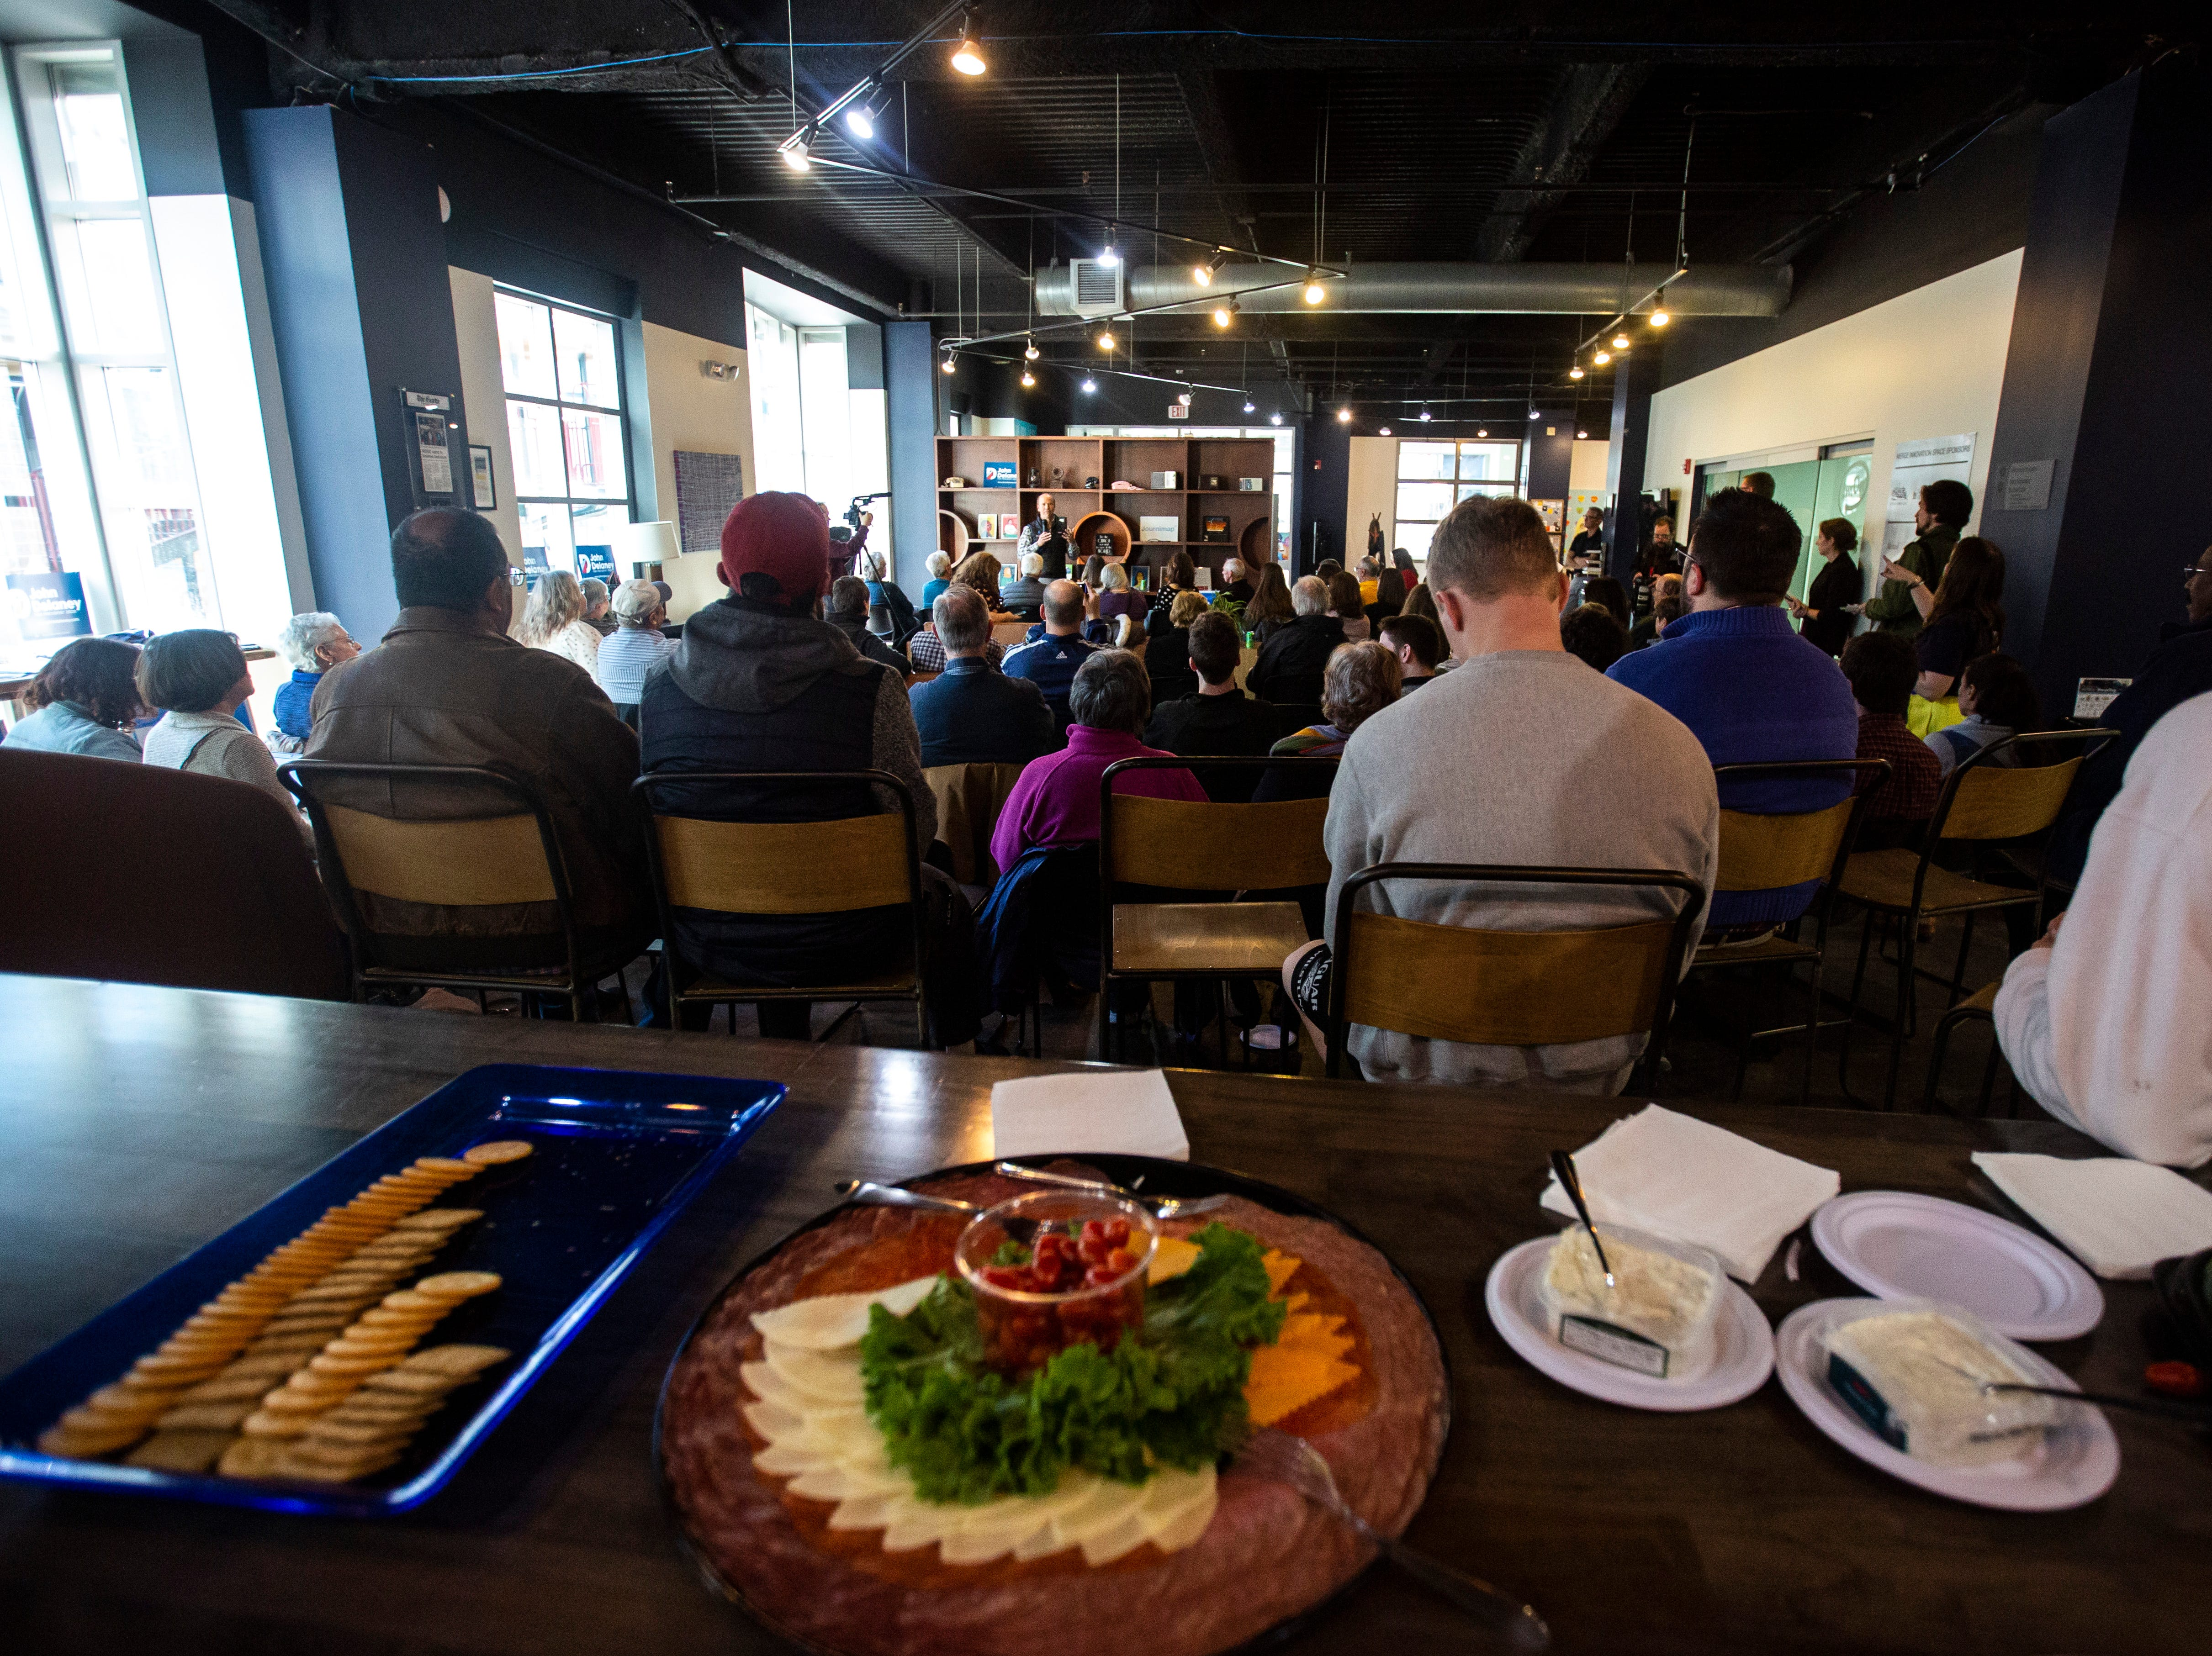 Democratic presidential candidate John Delaney speaks during an event on Sunday, March 31, 2019, at MERGE, a coworking space in downtown Iowa City, Iowa.